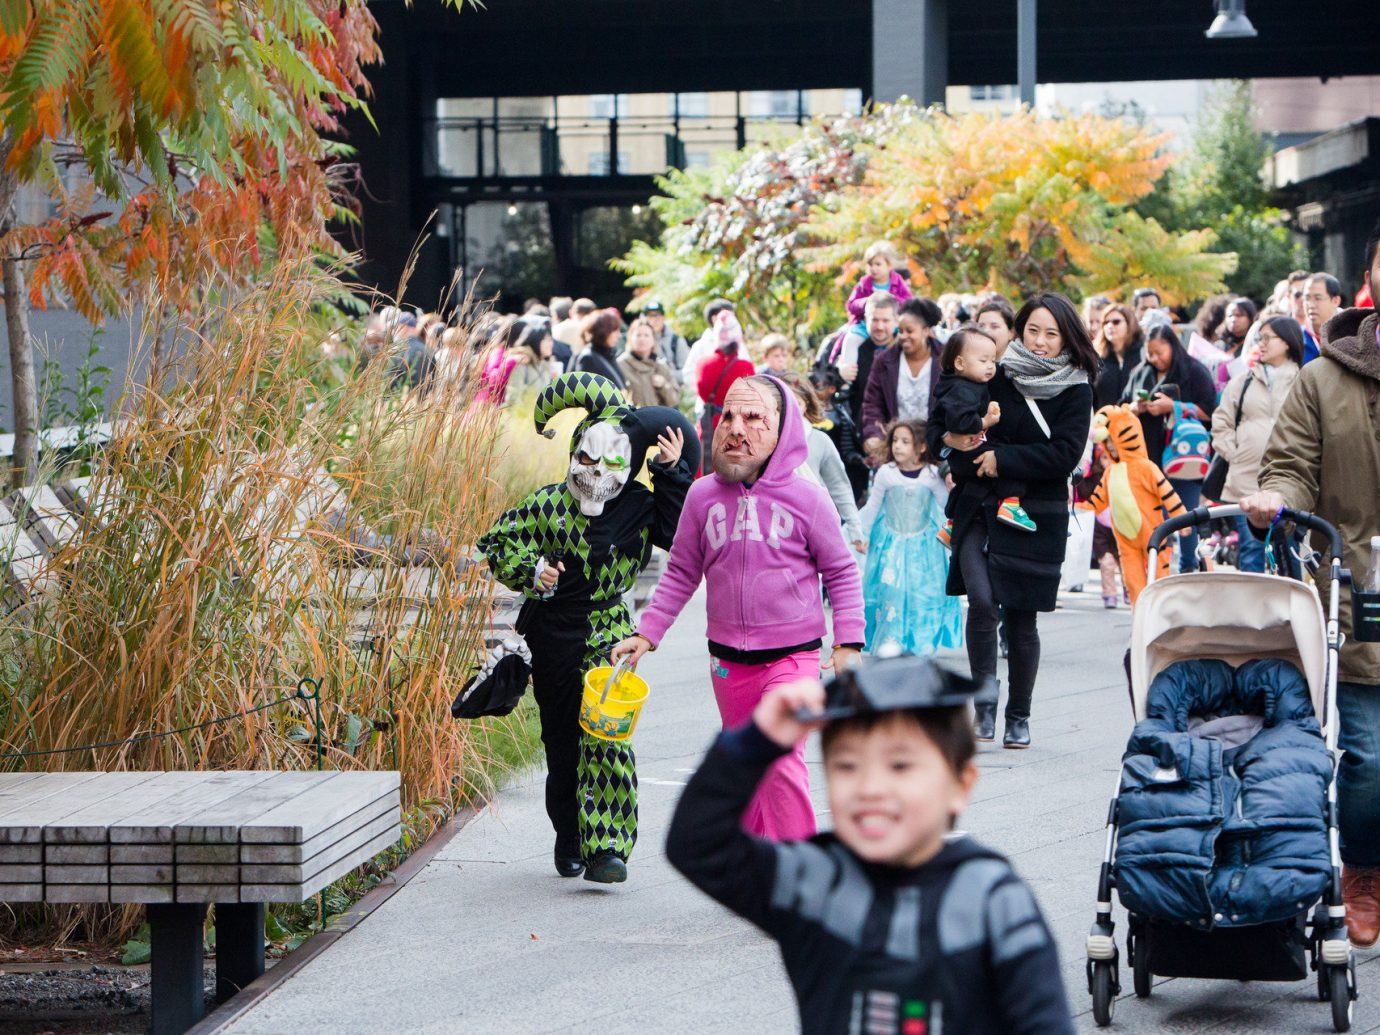 activities Budget children City costume crowd festival fun halloween parade people outdoor person tree park street spring group pedestrian